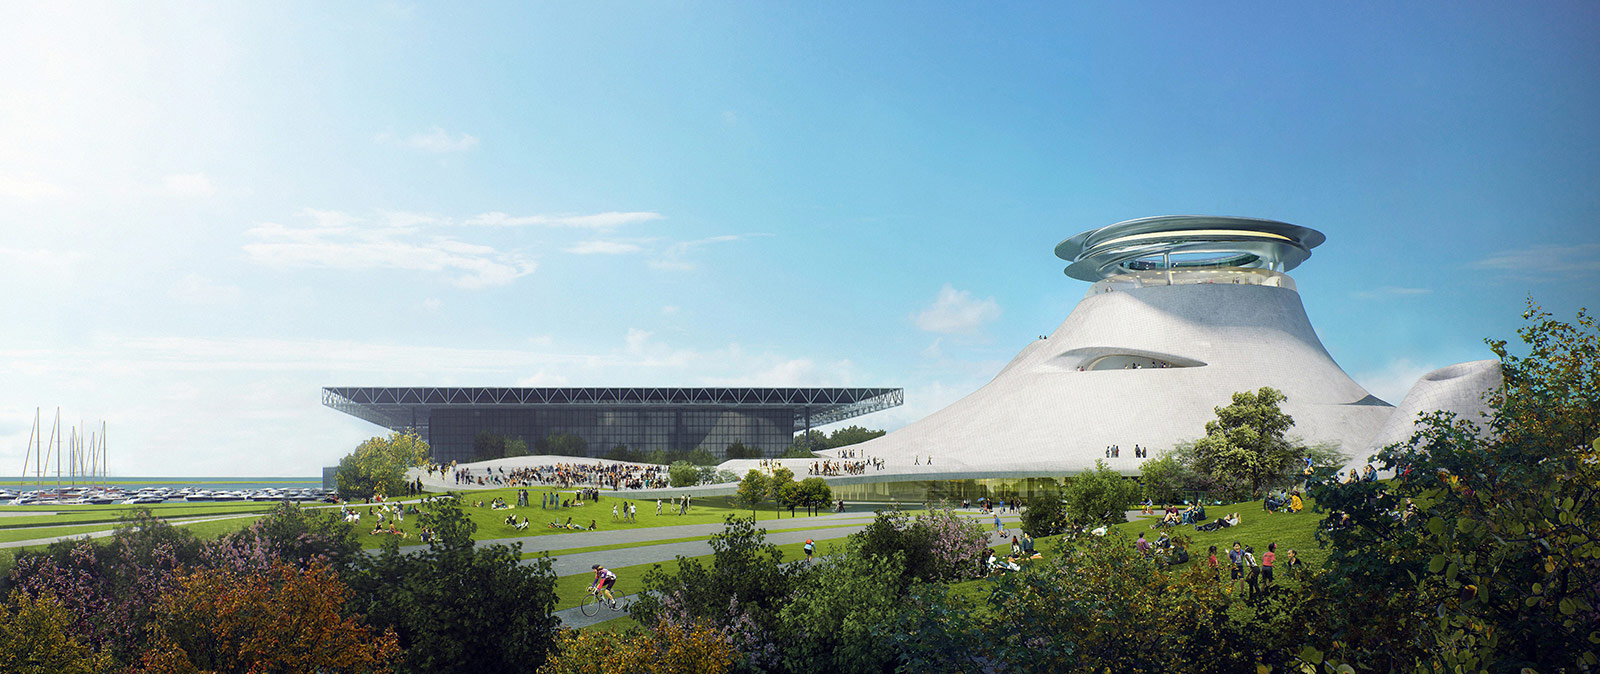 Lucas Museum of Narrative Art concept illustrations by MAD